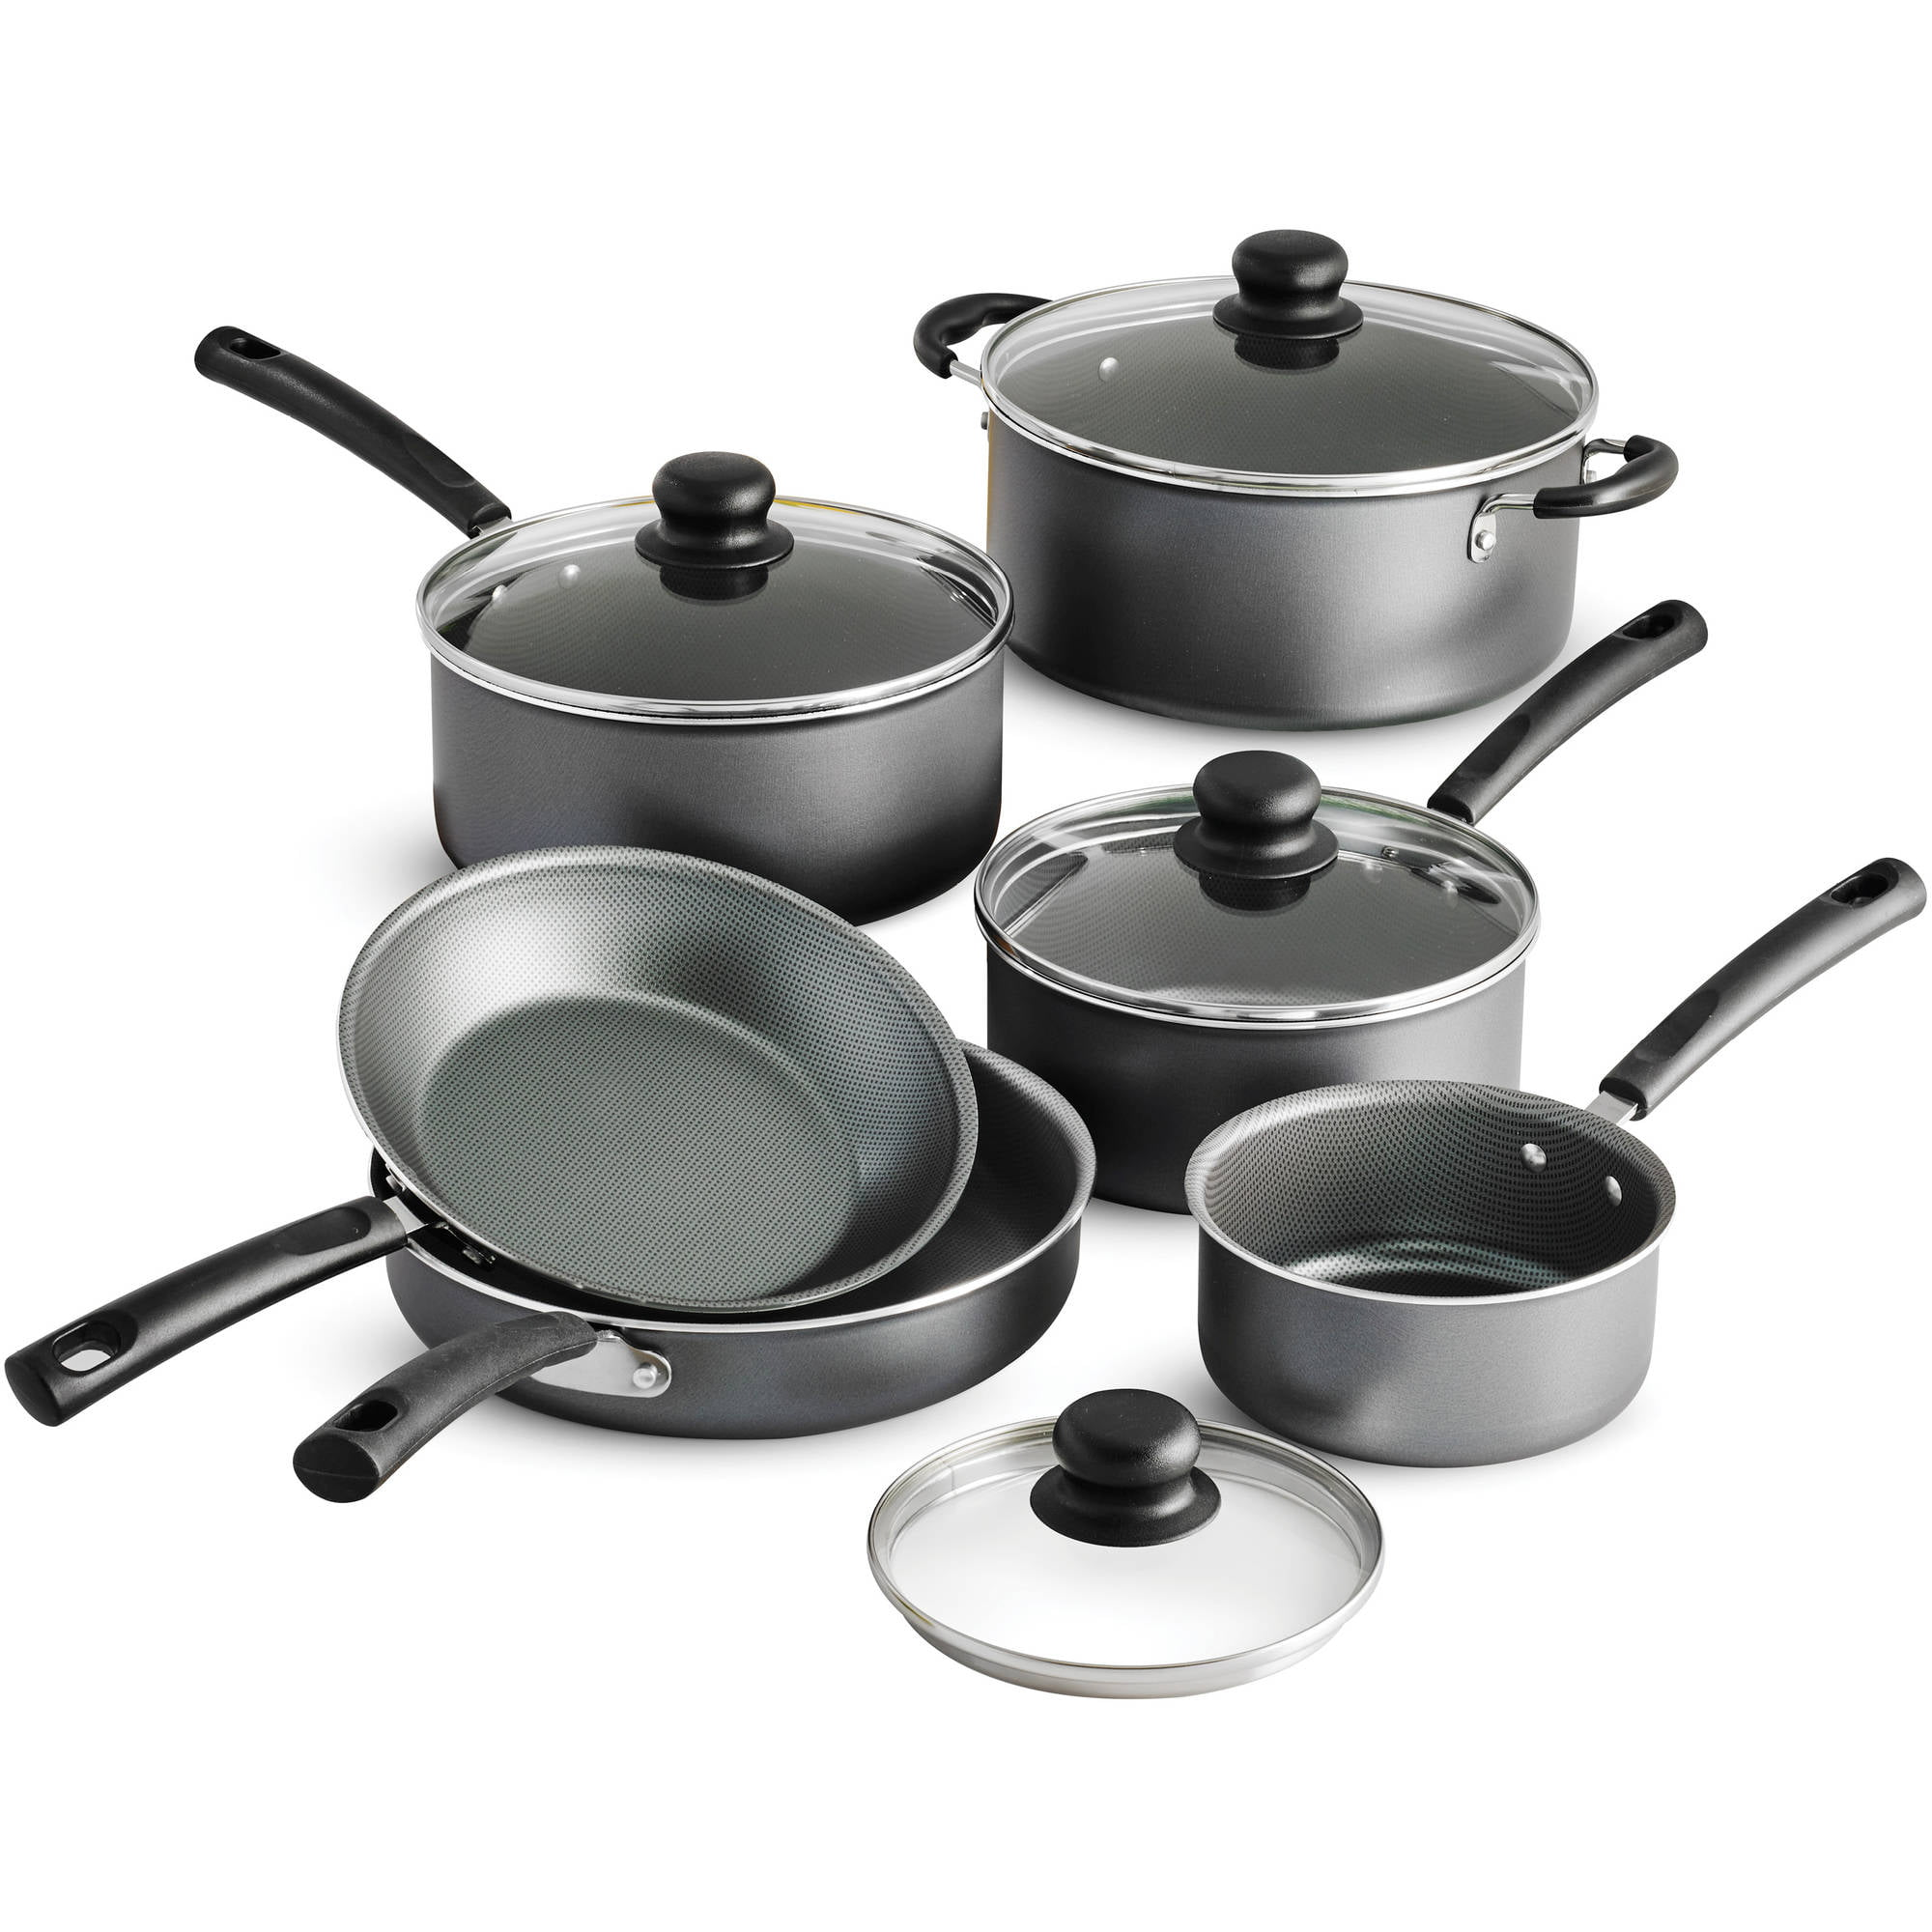 Cookware Sets - Walmart.com